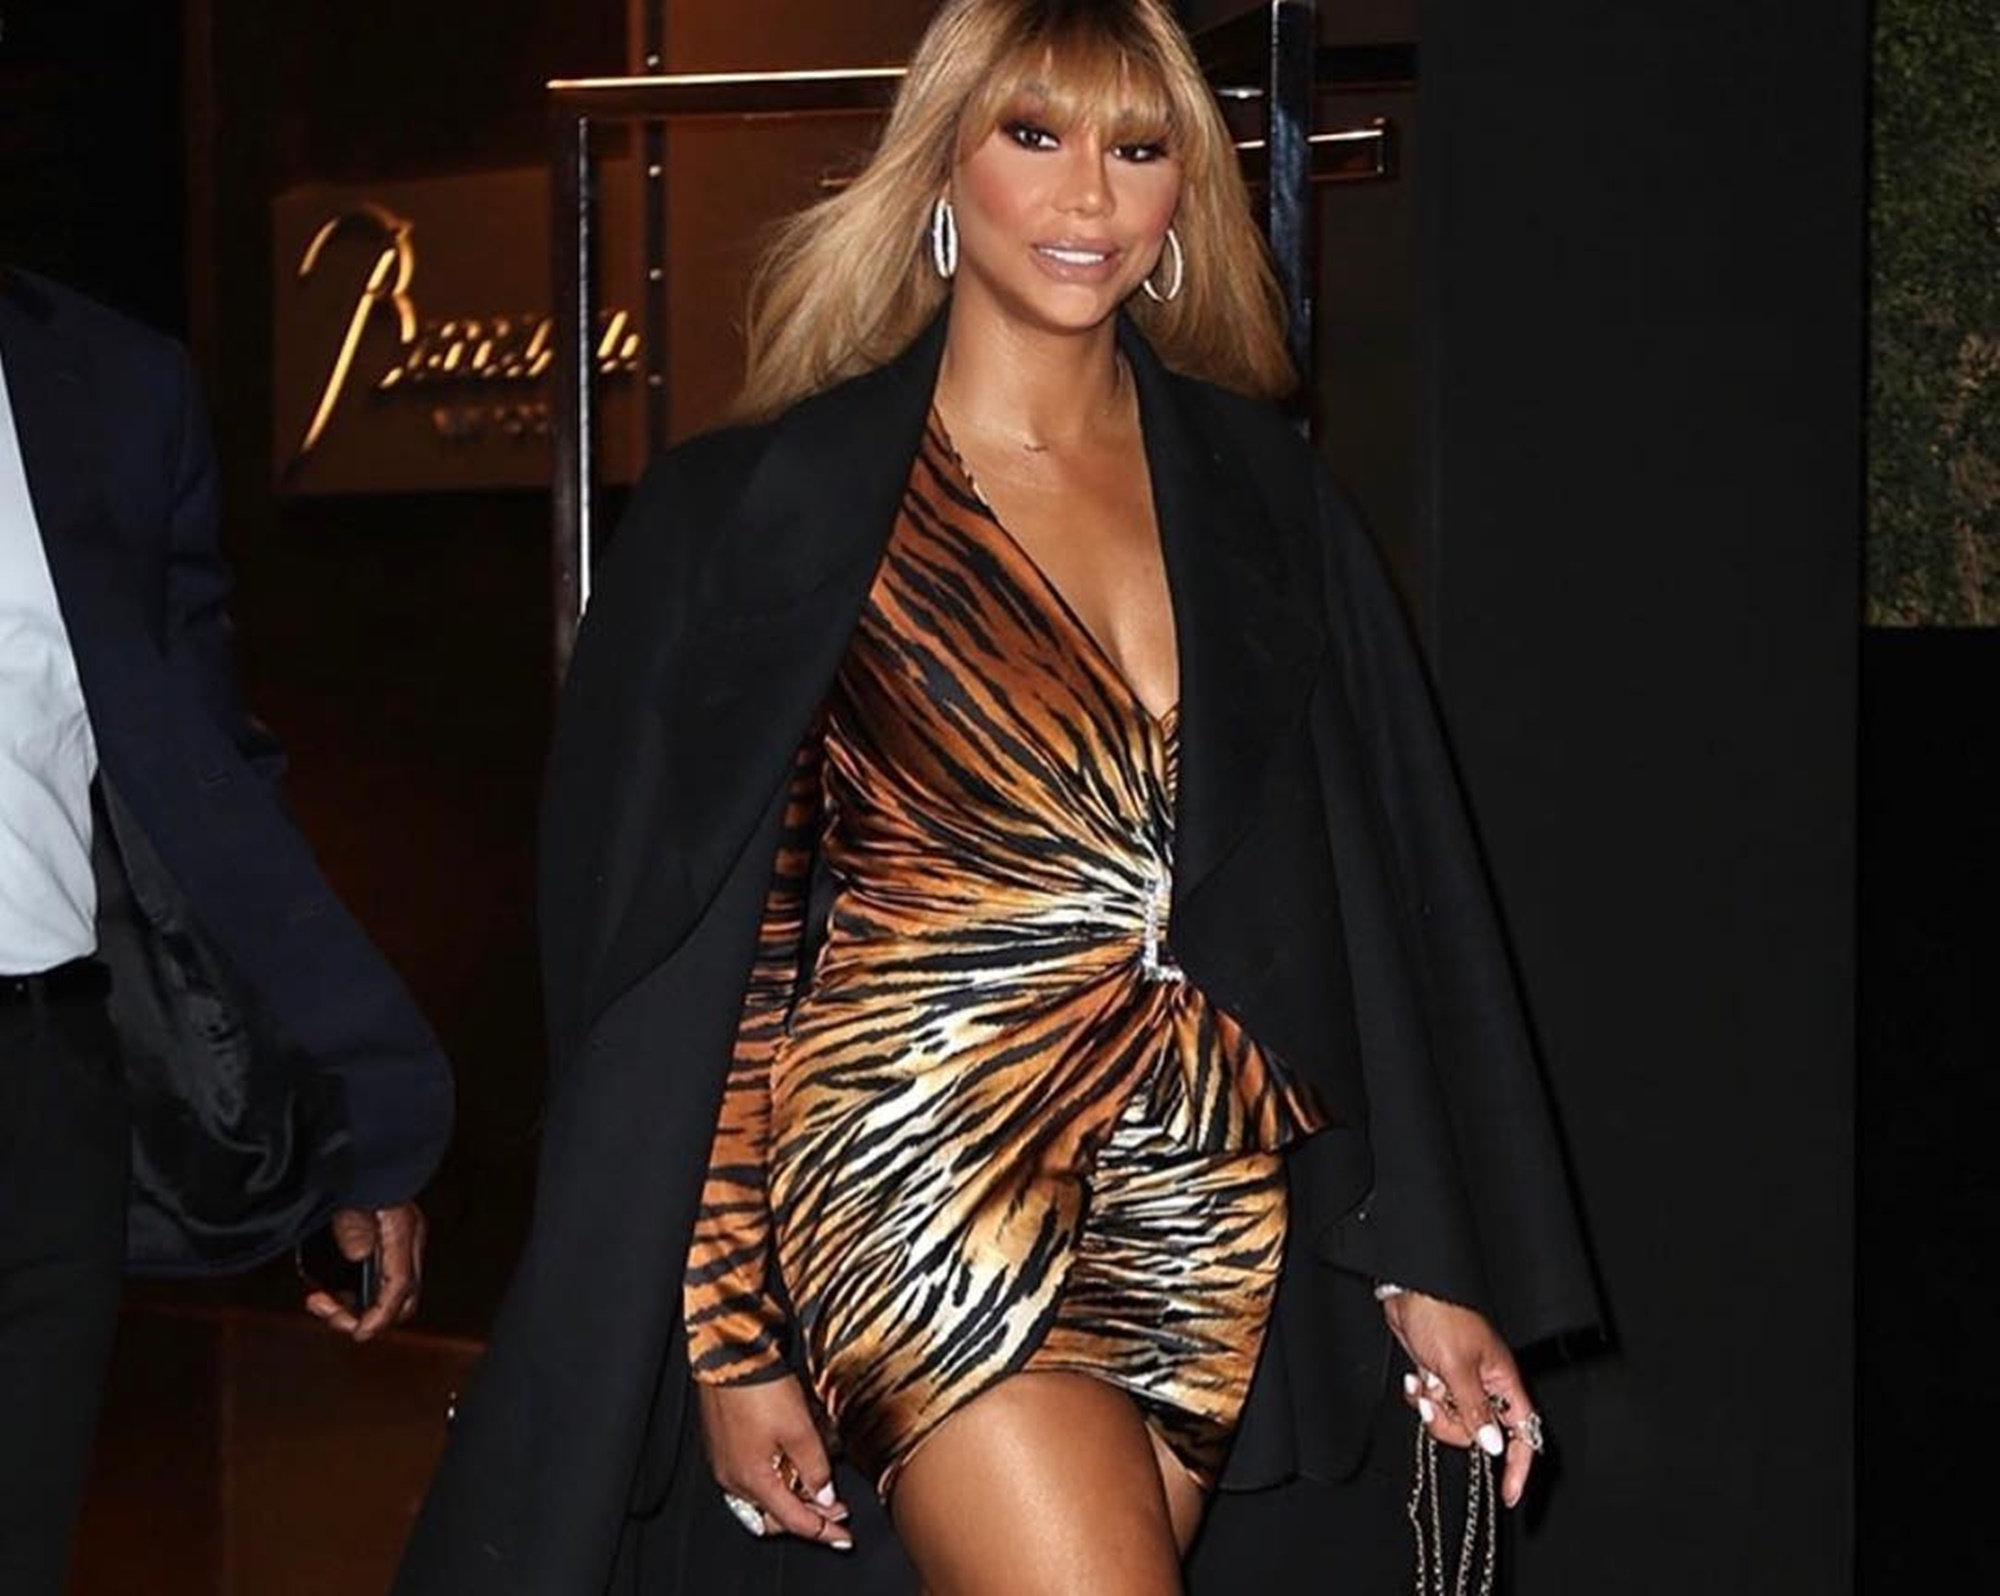 after-posting-this-flirty-video-tamar-braxton-got-blasted-for-going-too-far-with-plastic-surgeries